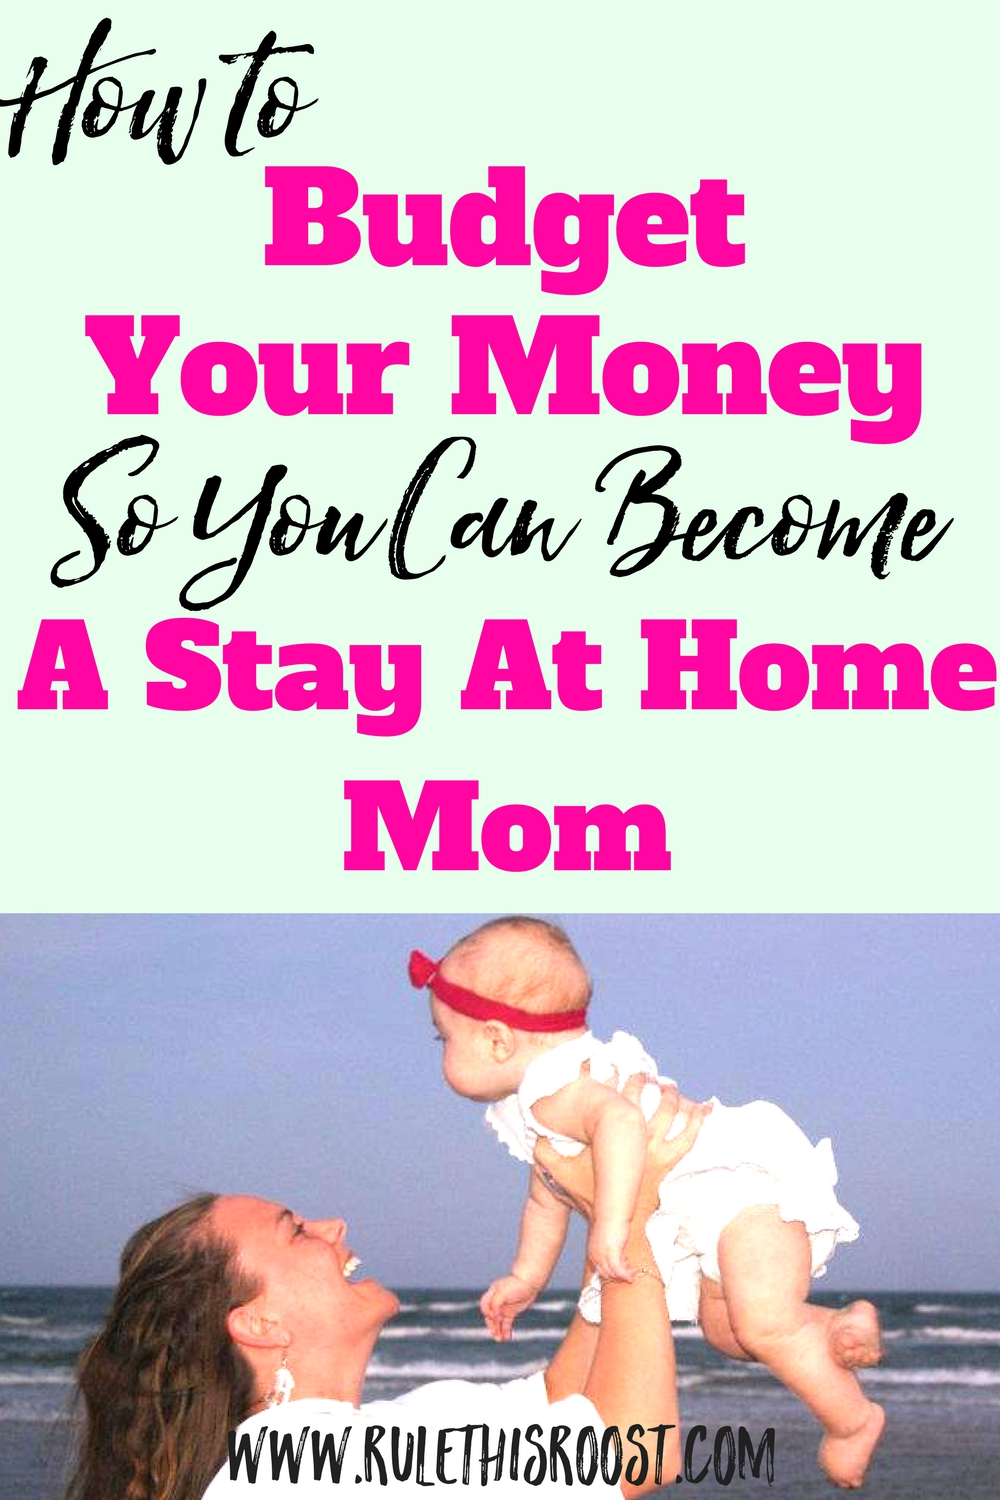 how to budget your money so you can become a stay at home mom